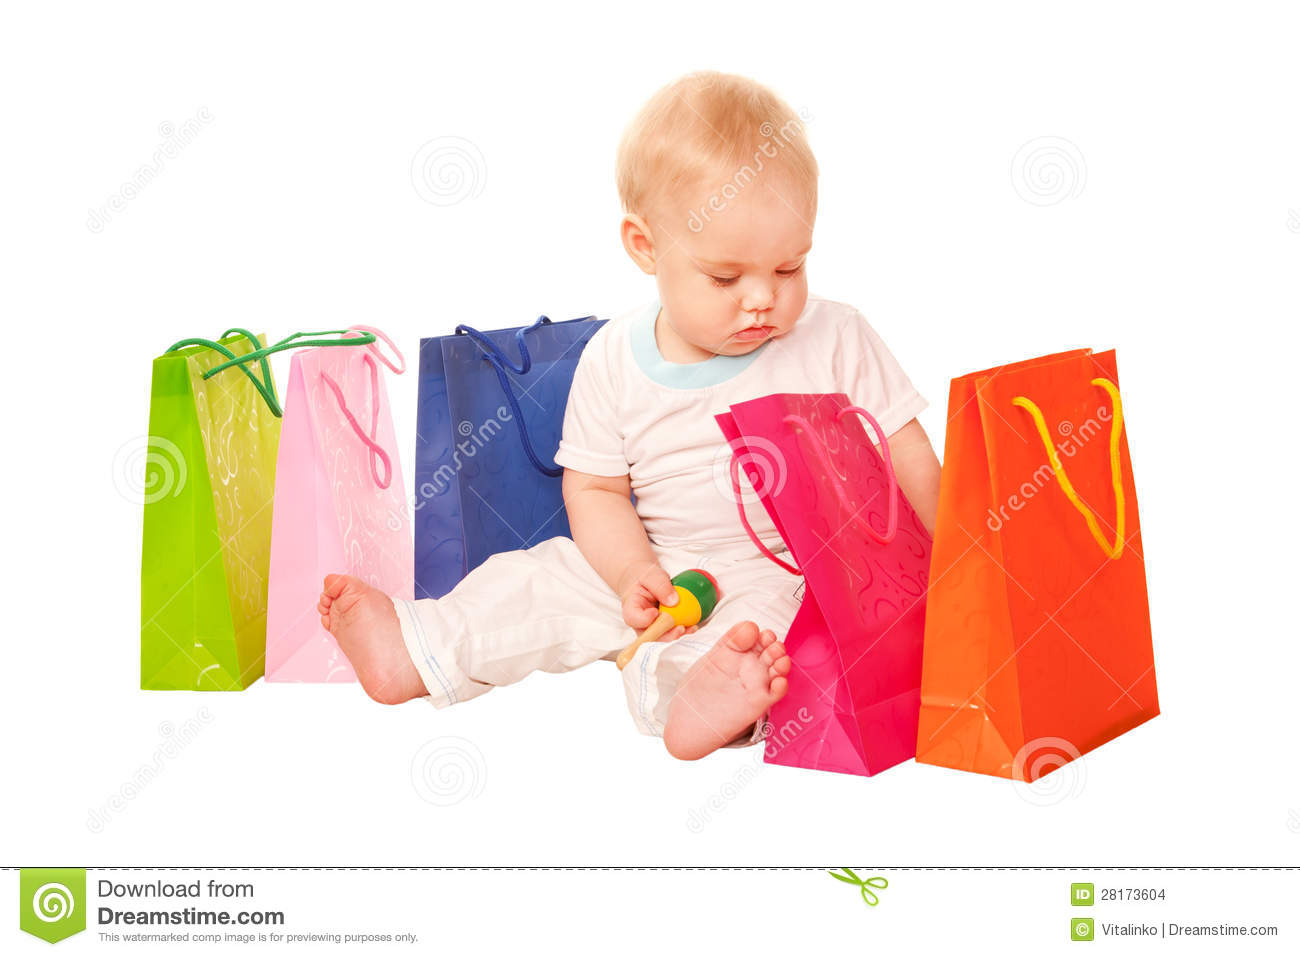 43e81e905 Baby shopping. stock photo. Image of child, holding, bags - 28173604